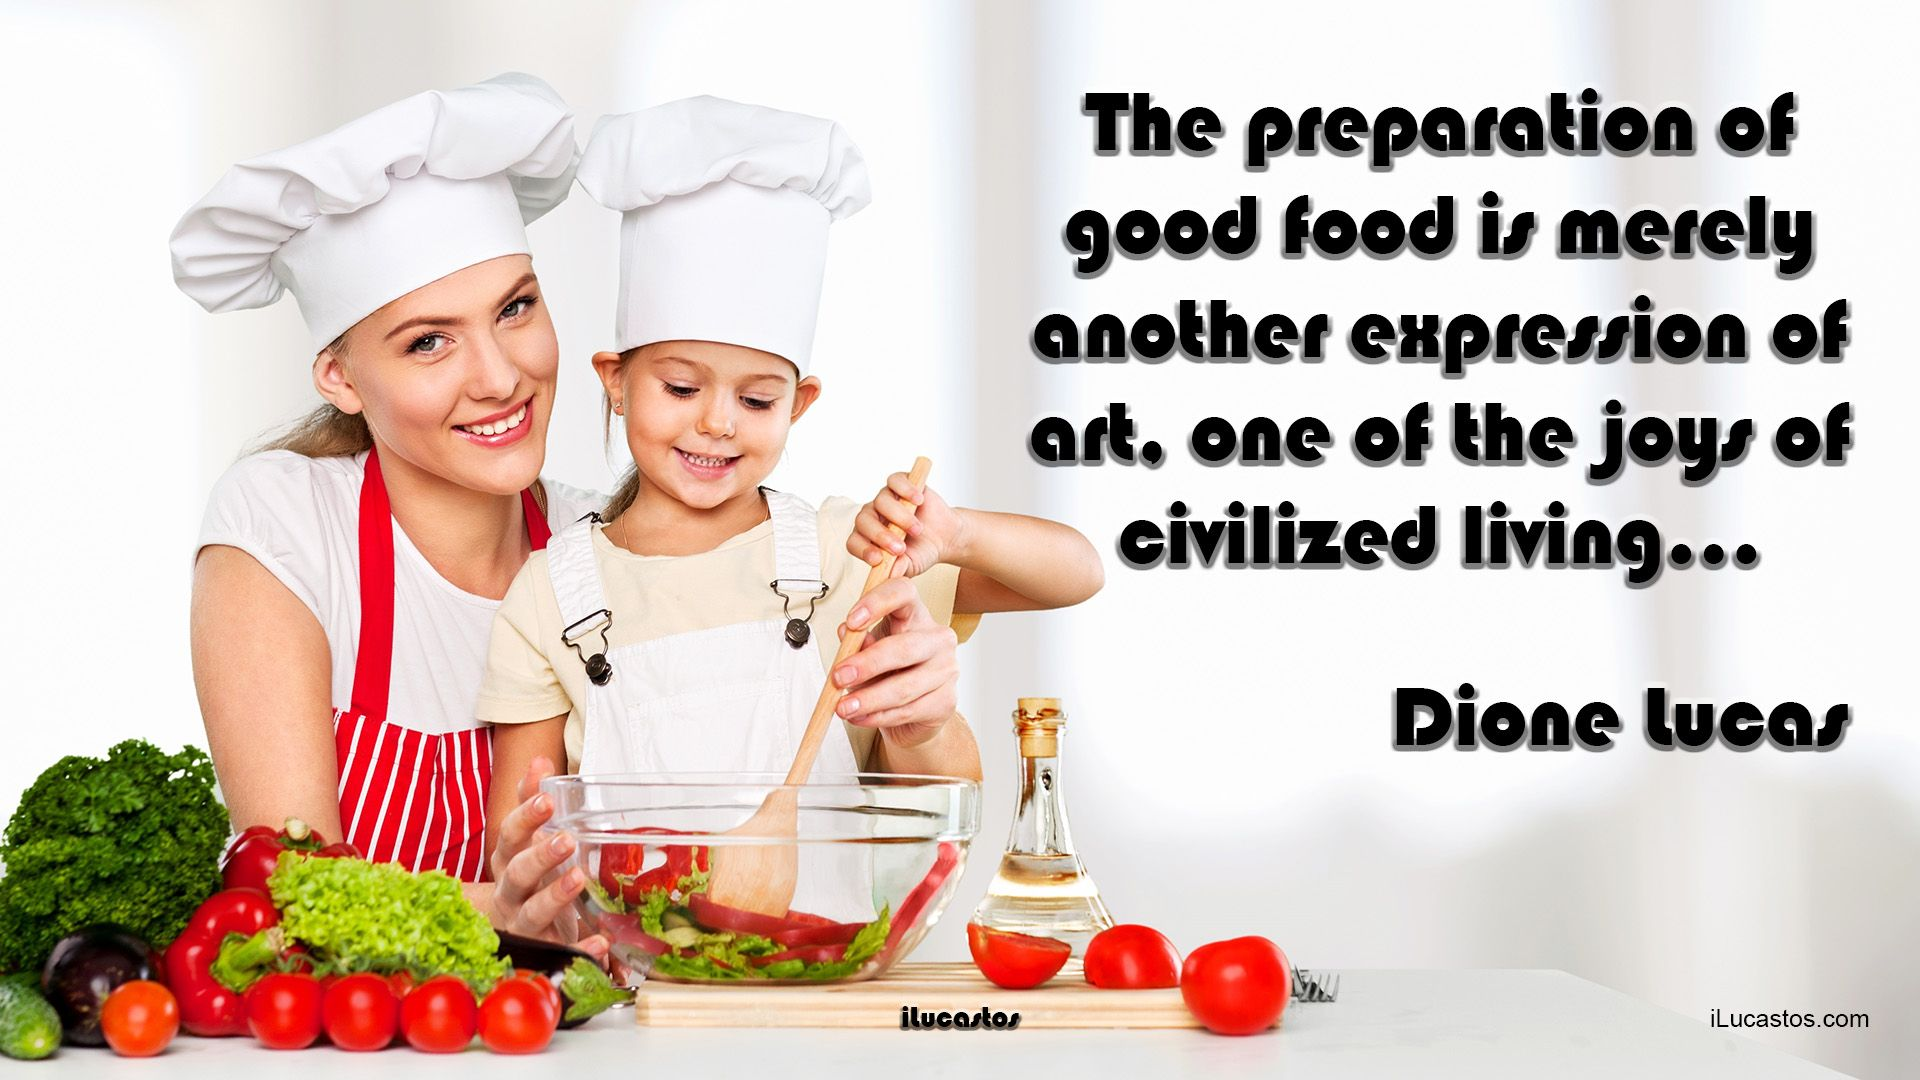 The preparation of good food is merely another expression of art, one of the joys of civilized living… ― Dione Lucas #goodfood #art #civilizedliving #lifequote #lifequotes